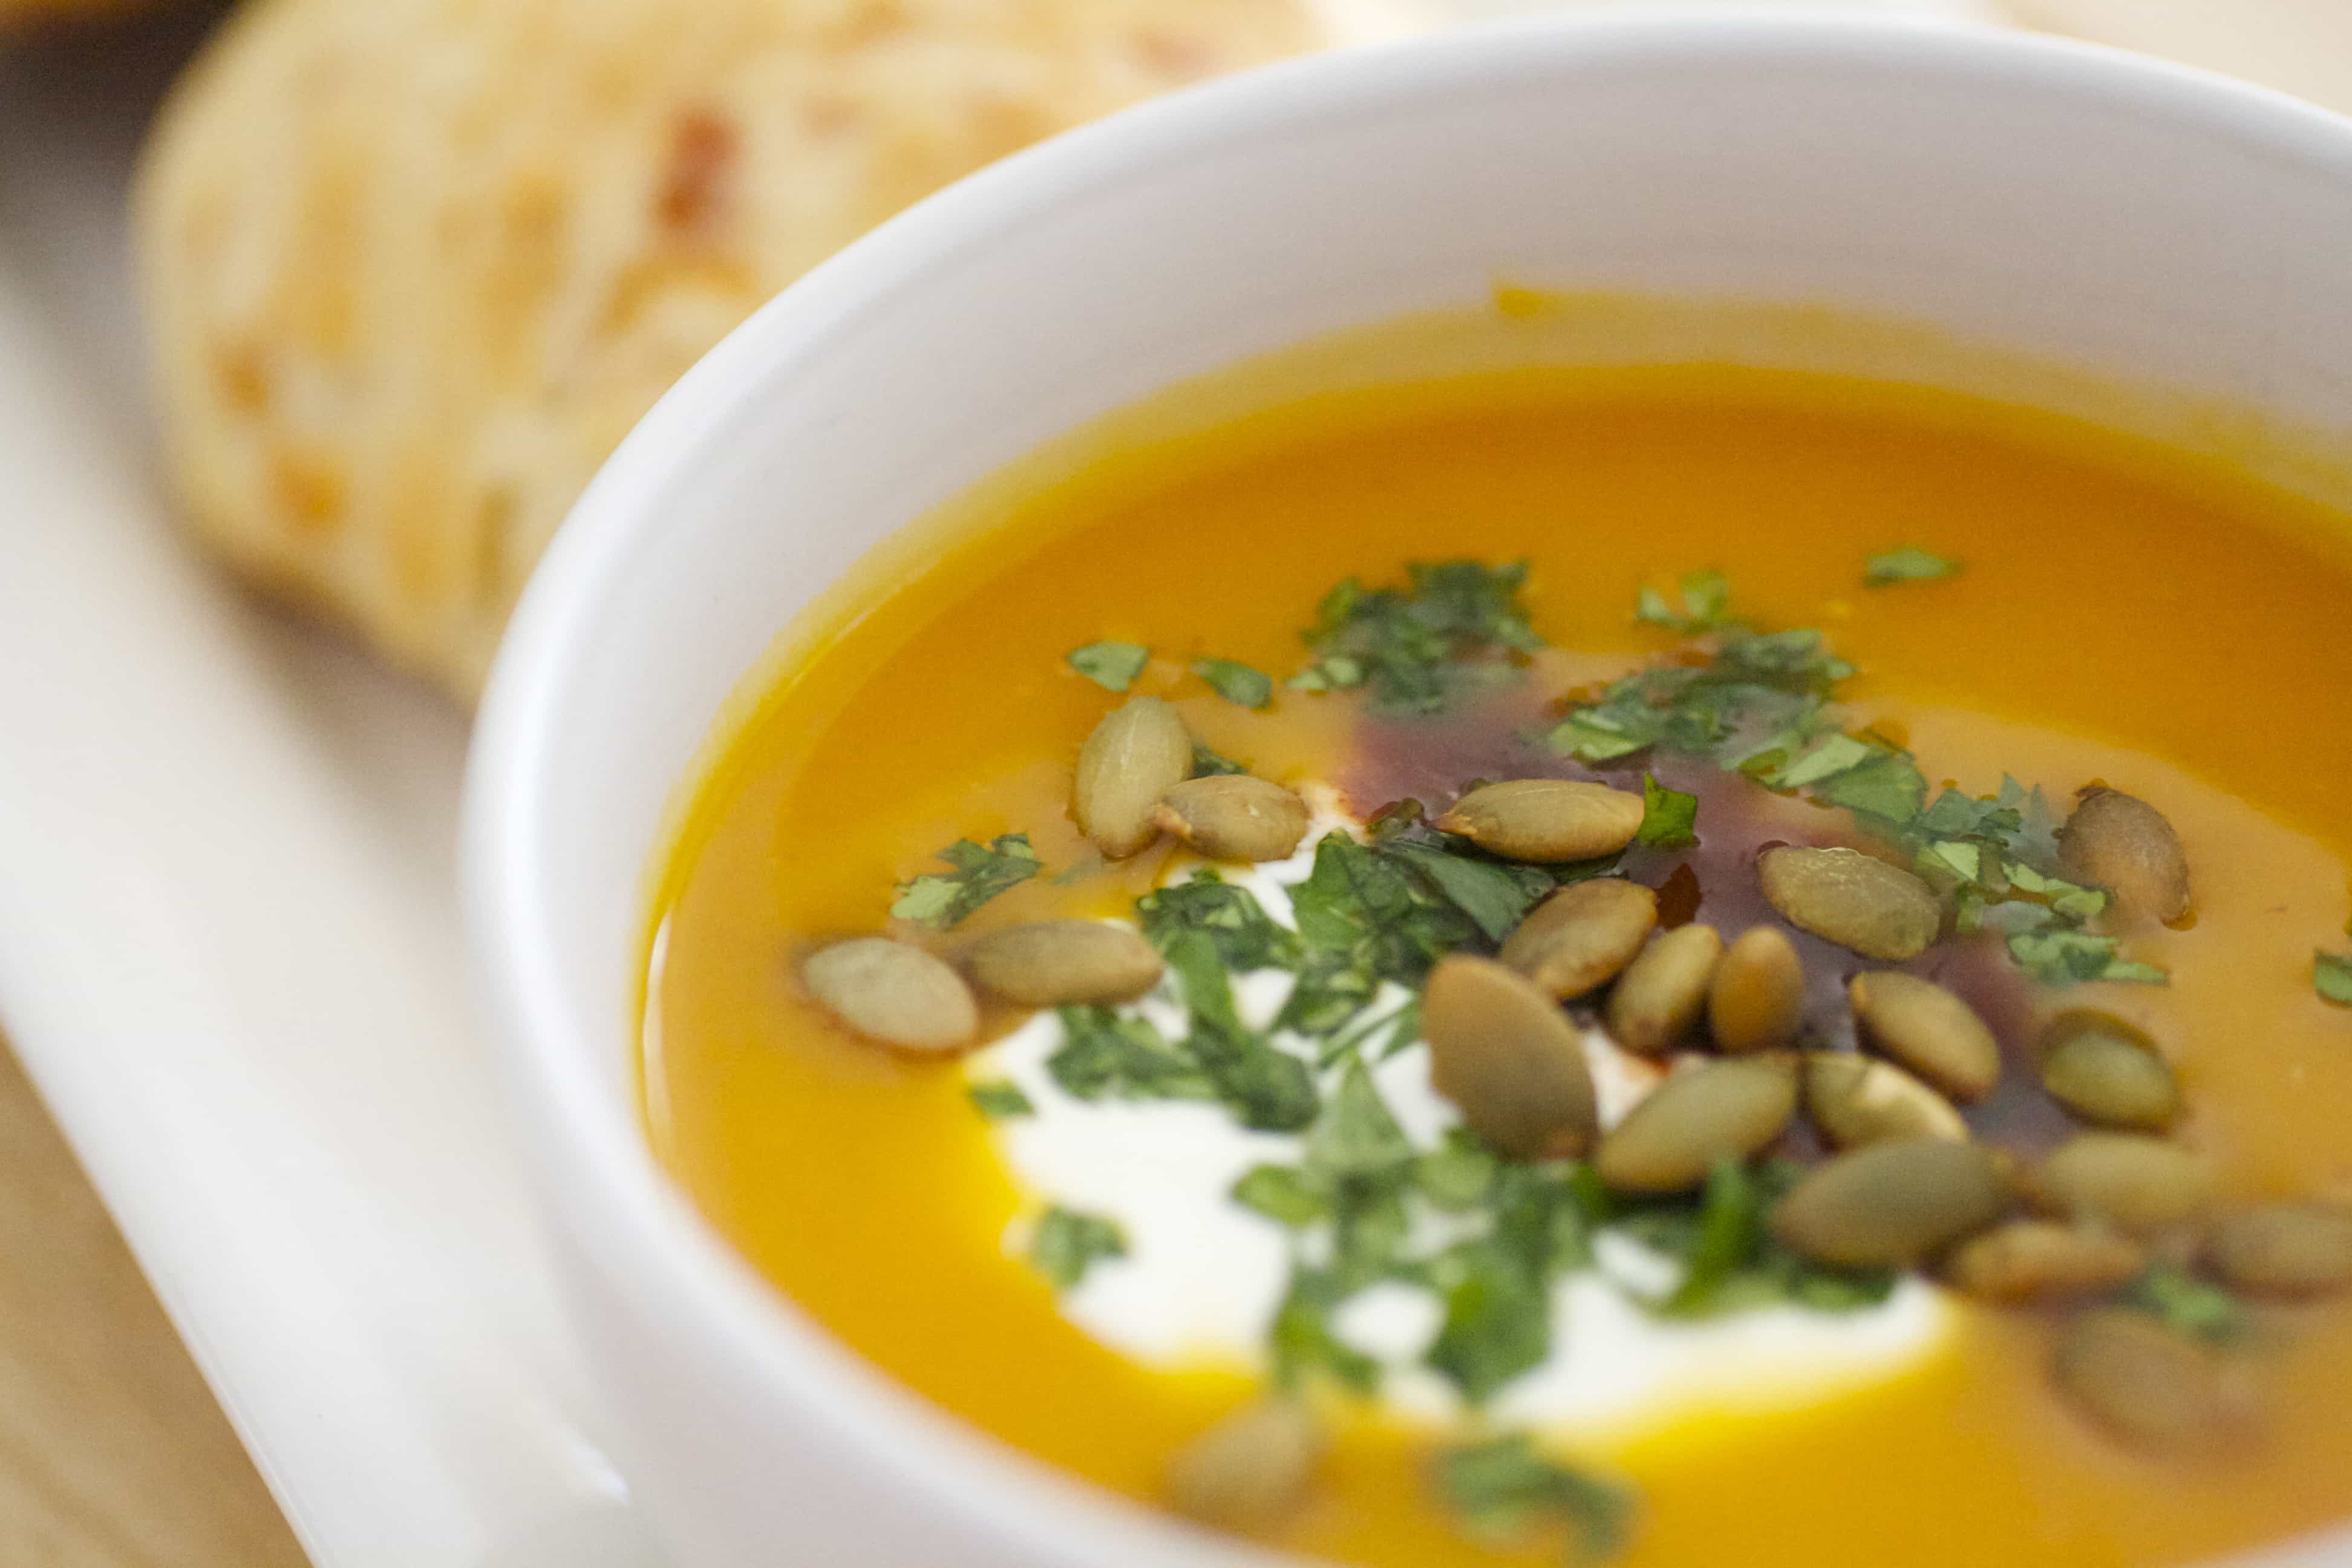 Spicy Chipotle Butternut Squash Soup Recipe - Tasty Ever After